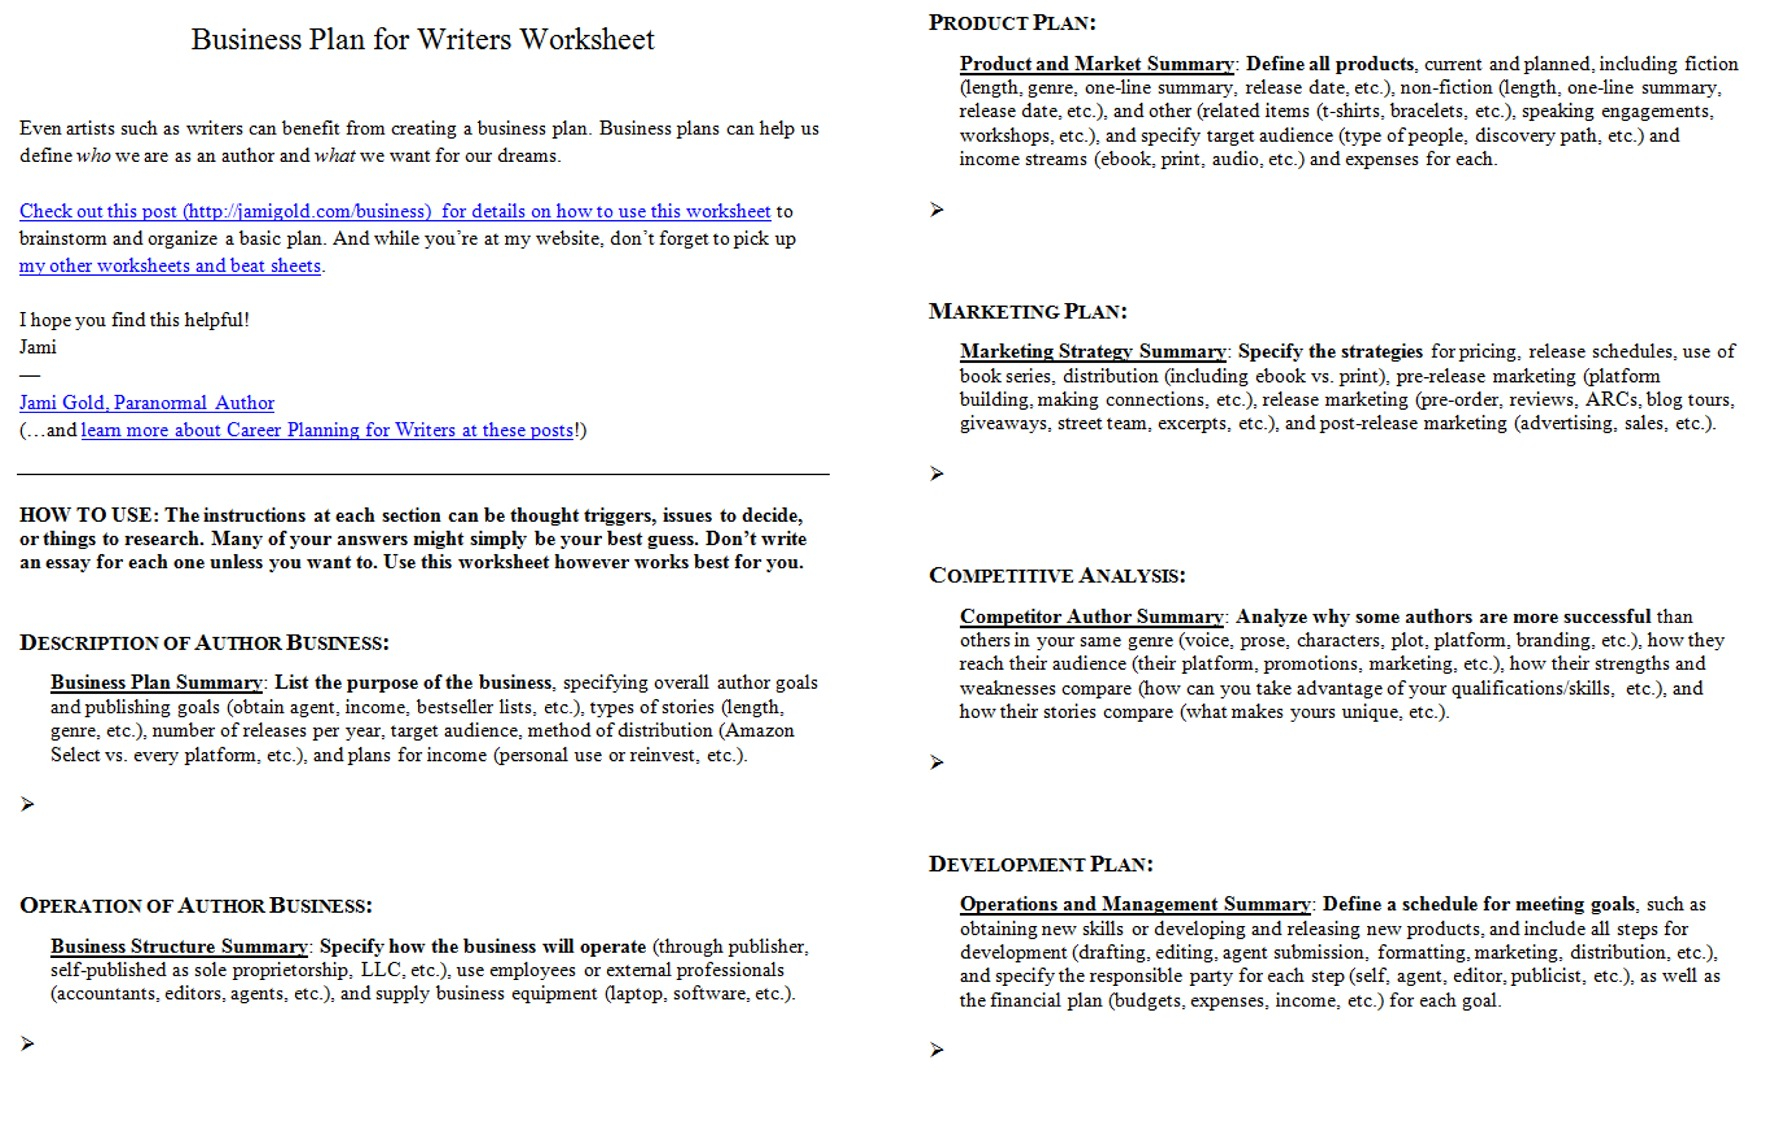 Weirdmailus  Wonderful Worksheets For Writers  Jami Gold Paranormal Author With Great Screen Shot Of Both Pages Of The Business Plan For Writers Worksheet With Attractive Th Grade English Worksheets Also Alphabet Worksheet In Addition Square Roots Worksheets And Free Printable Budget Worksheet As Well As Letter A Worksheet Additionally Free Tracing Worksheets From Jamigoldcom With Weirdmailus  Great Worksheets For Writers  Jami Gold Paranormal Author With Attractive Screen Shot Of Both Pages Of The Business Plan For Writers Worksheet And Wonderful Th Grade English Worksheets Also Alphabet Worksheet In Addition Square Roots Worksheets From Jamigoldcom